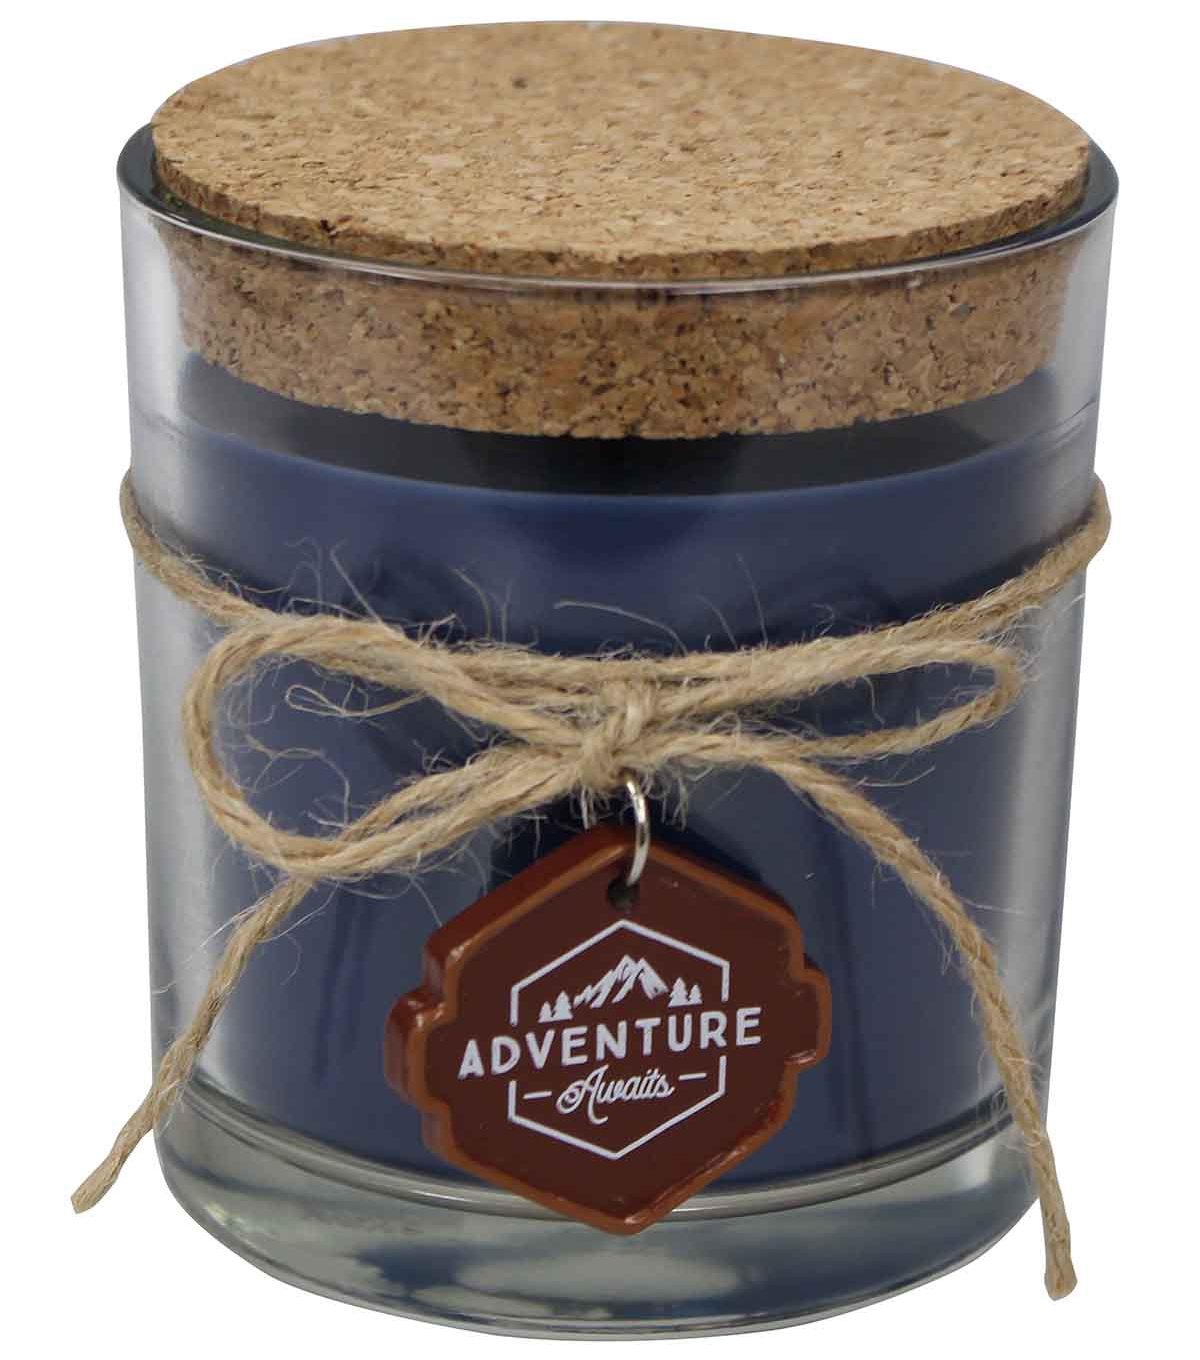 Camp Ann Toasted Marshmallow Candle with Charm & Cork Lid-Navy